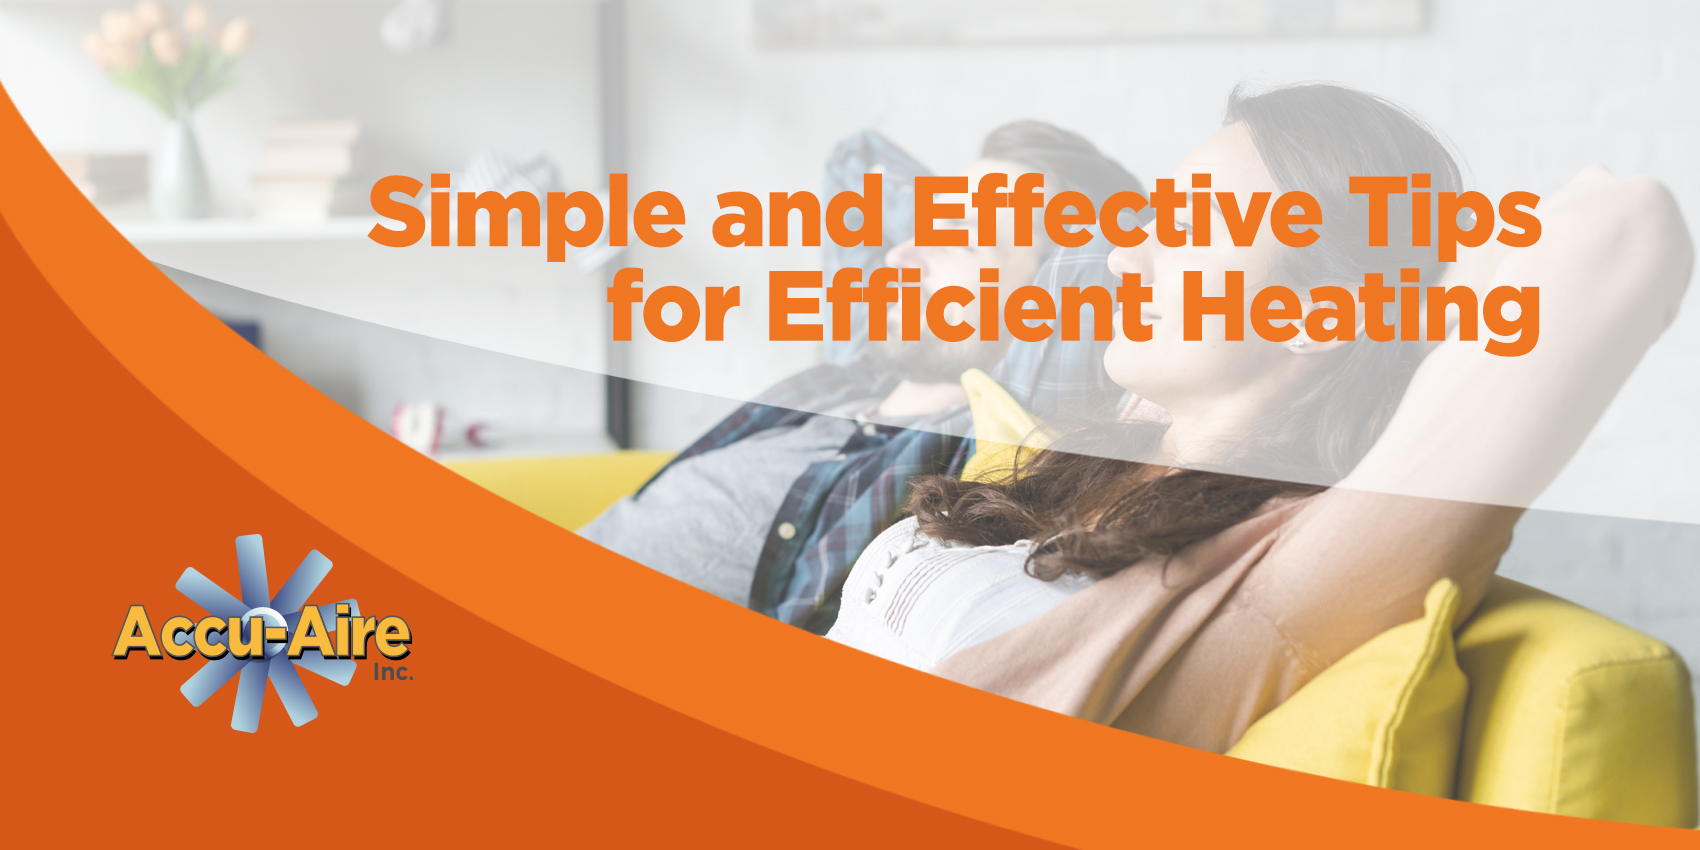 Simple and Effective Tips for Efficient Heating